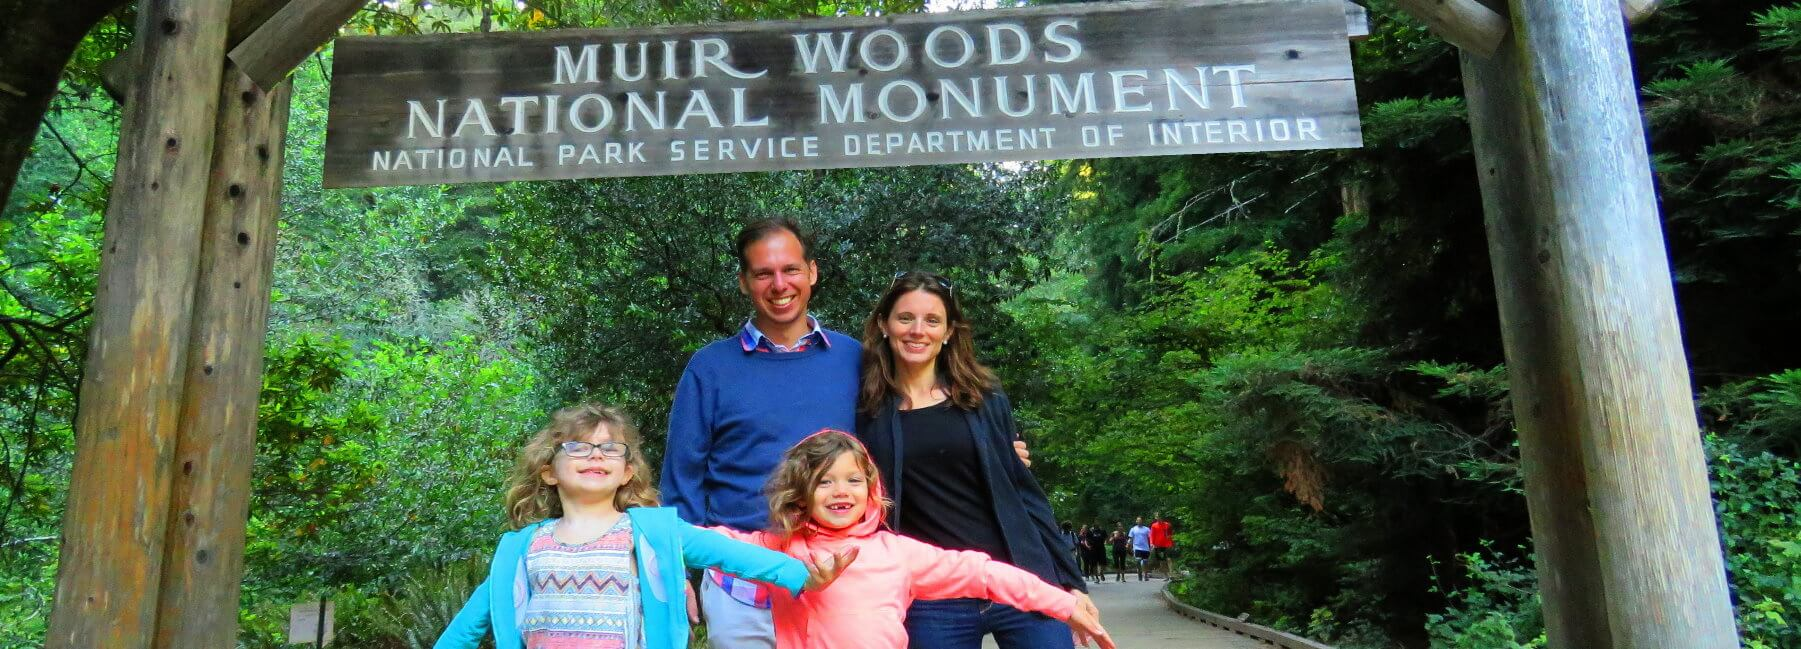 muir_woods_park_of_redwoods_trees_day_trip_with_kids